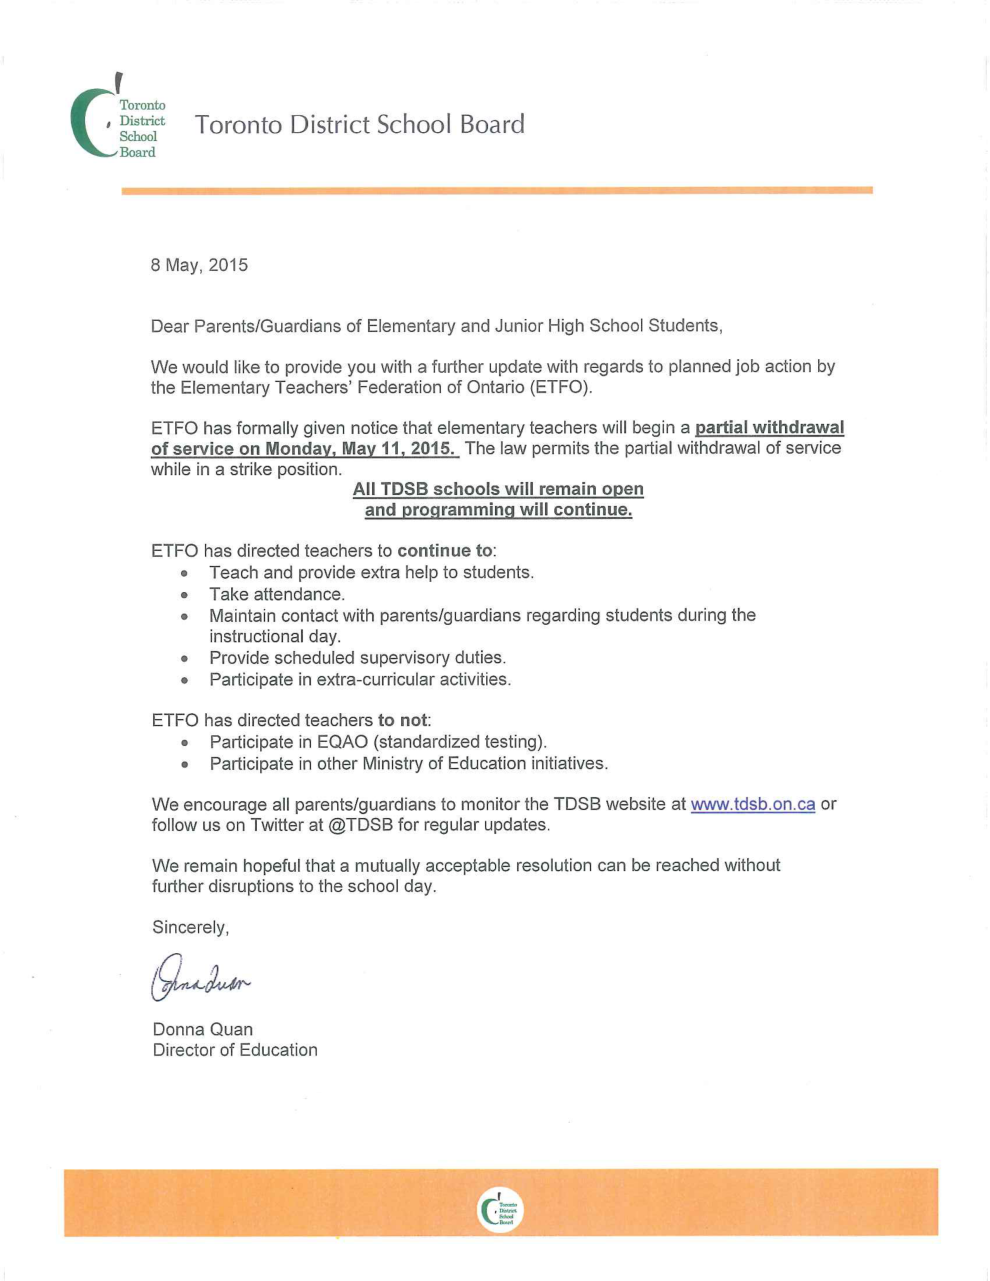 ETFO Work-to-Rule Letter-page1